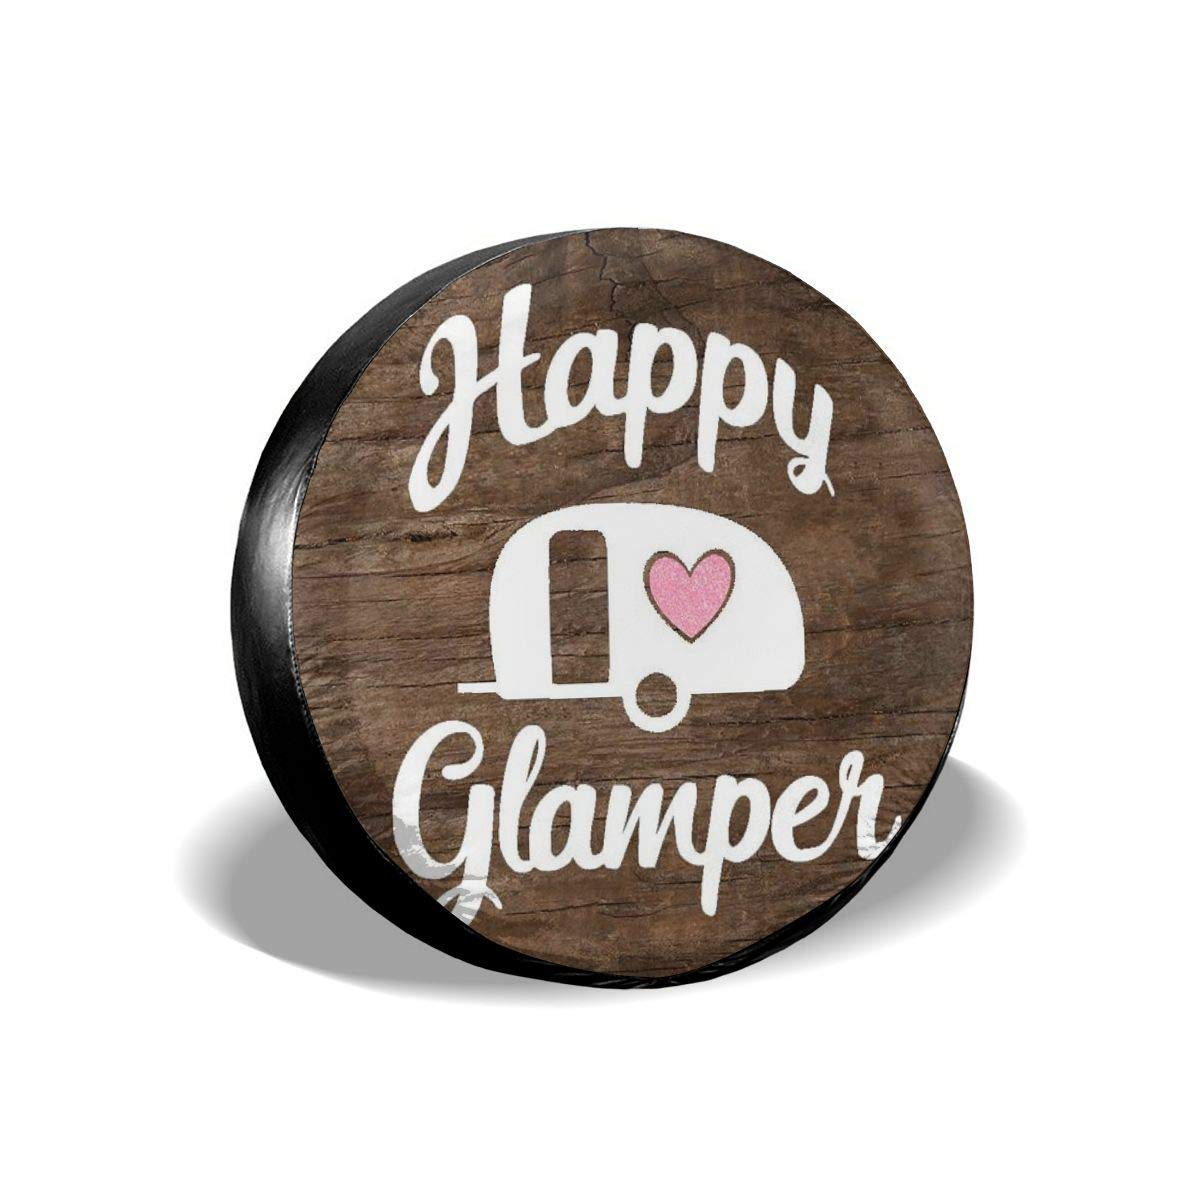 Car Tire Cover Sunscreen Protective Cover Happy Glamper Glitter Decal Water Proof Universal Spare Wheel Tire Cover Fit for Trailer RV SUV and Various Vehicles 14 15 16 17 Inch